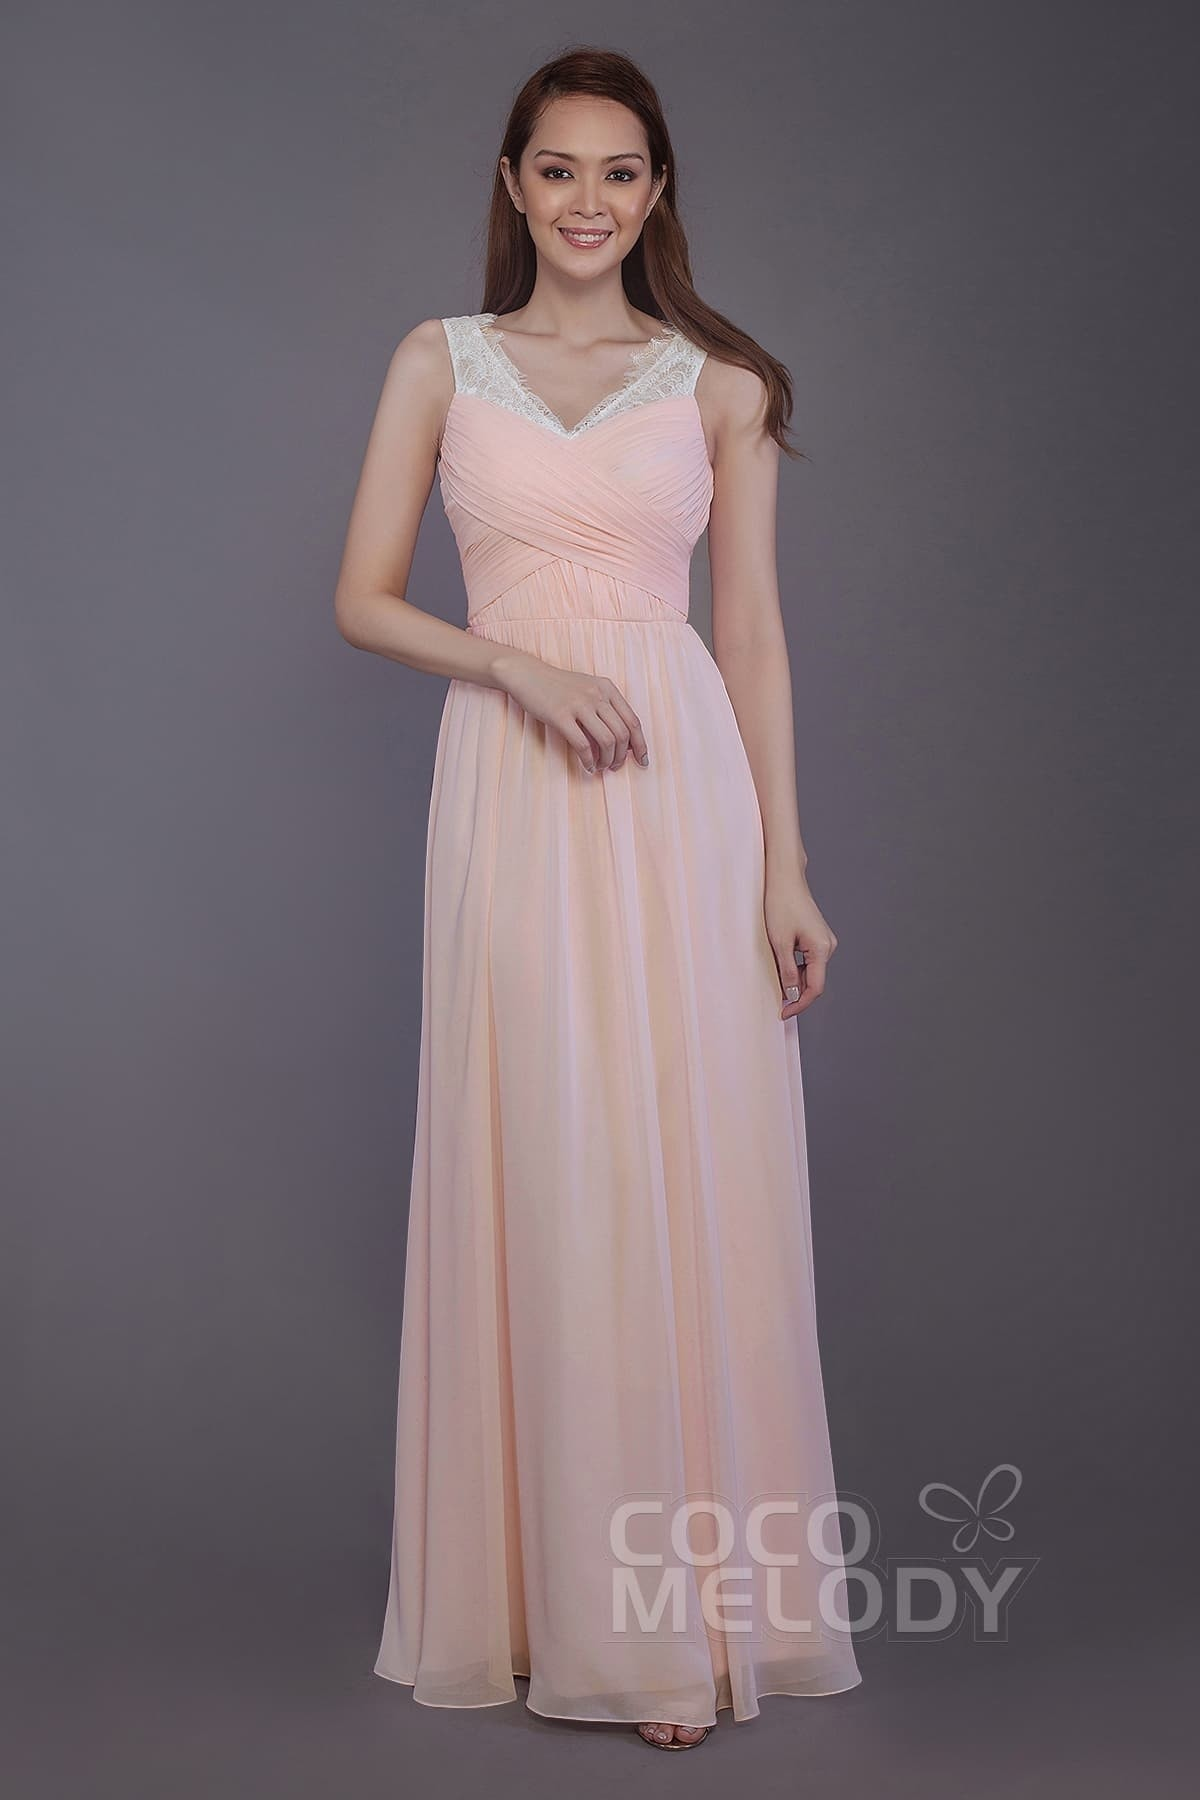 b143a475b0678 Sheath-Column Floor Length Chiffon and Lace Bridesmaid Dress PR3542